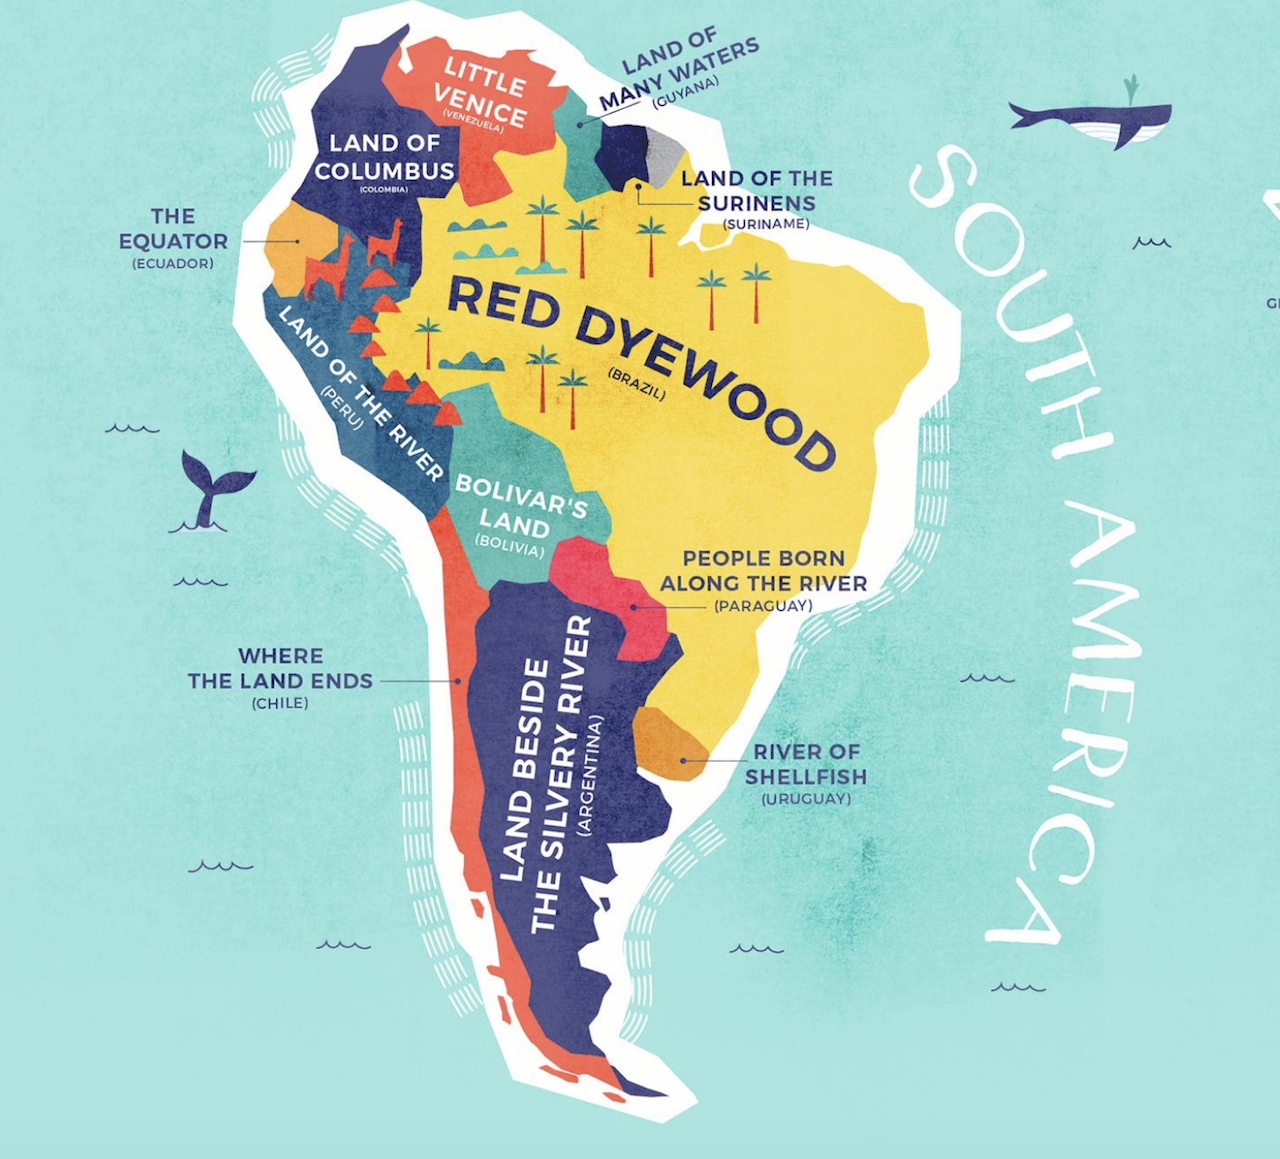 South American literal translations